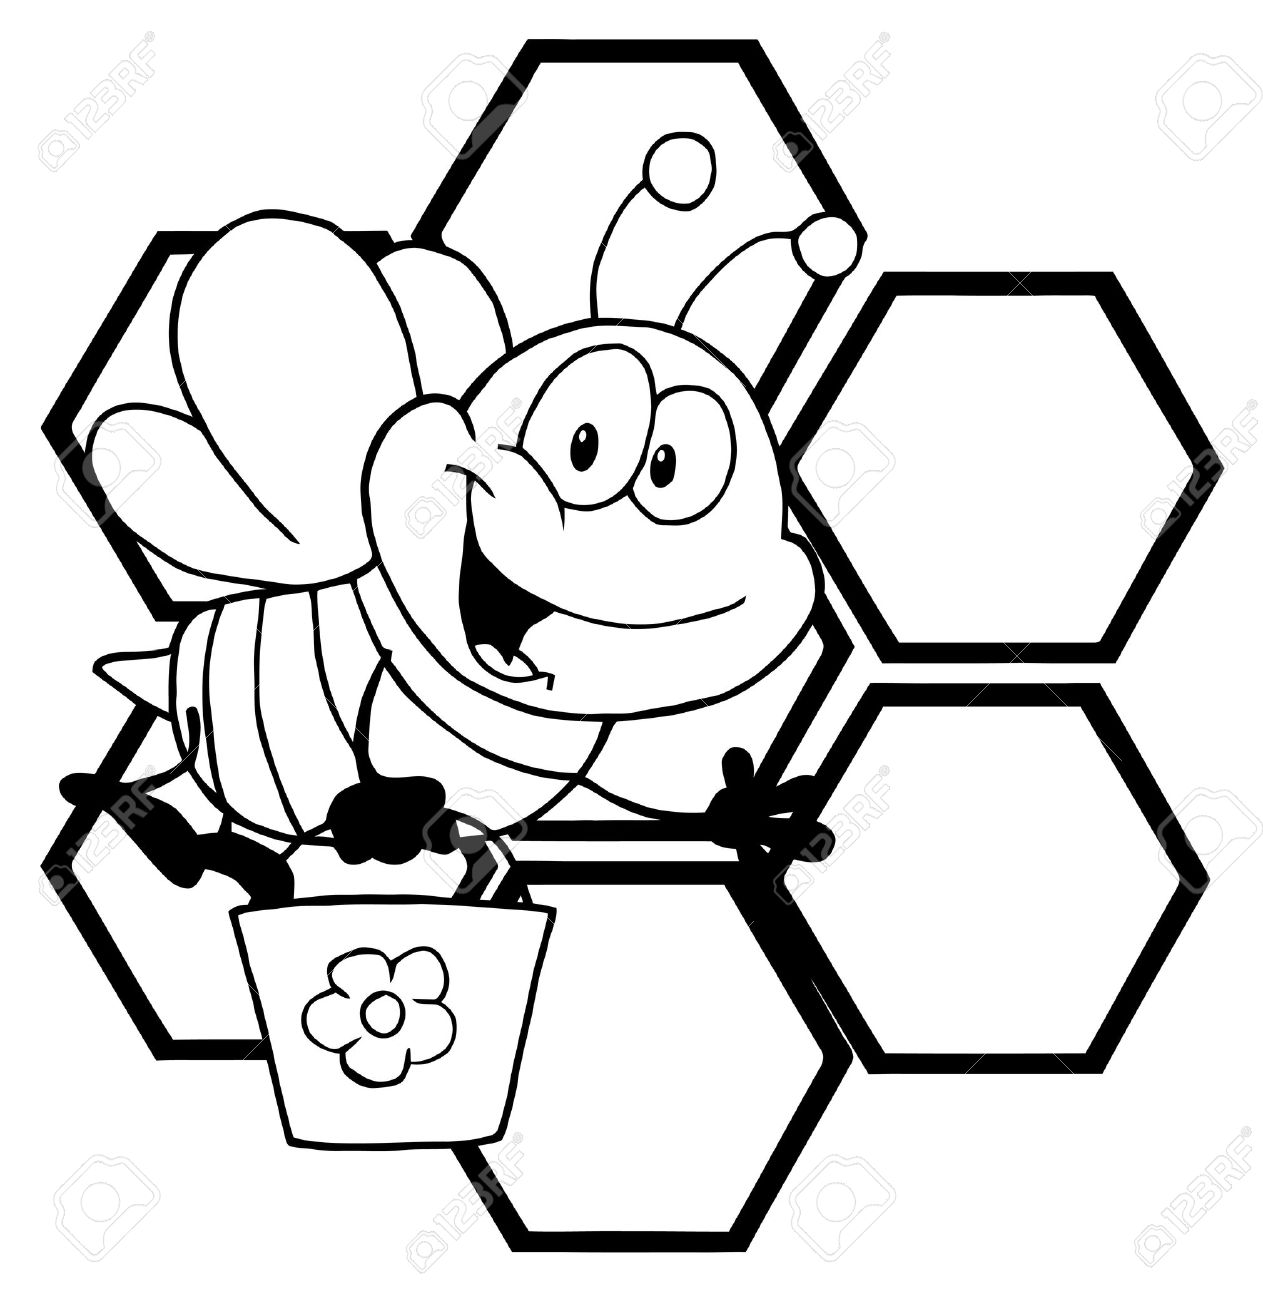 Honey Bee Drawing Clip Art At Getdrawings